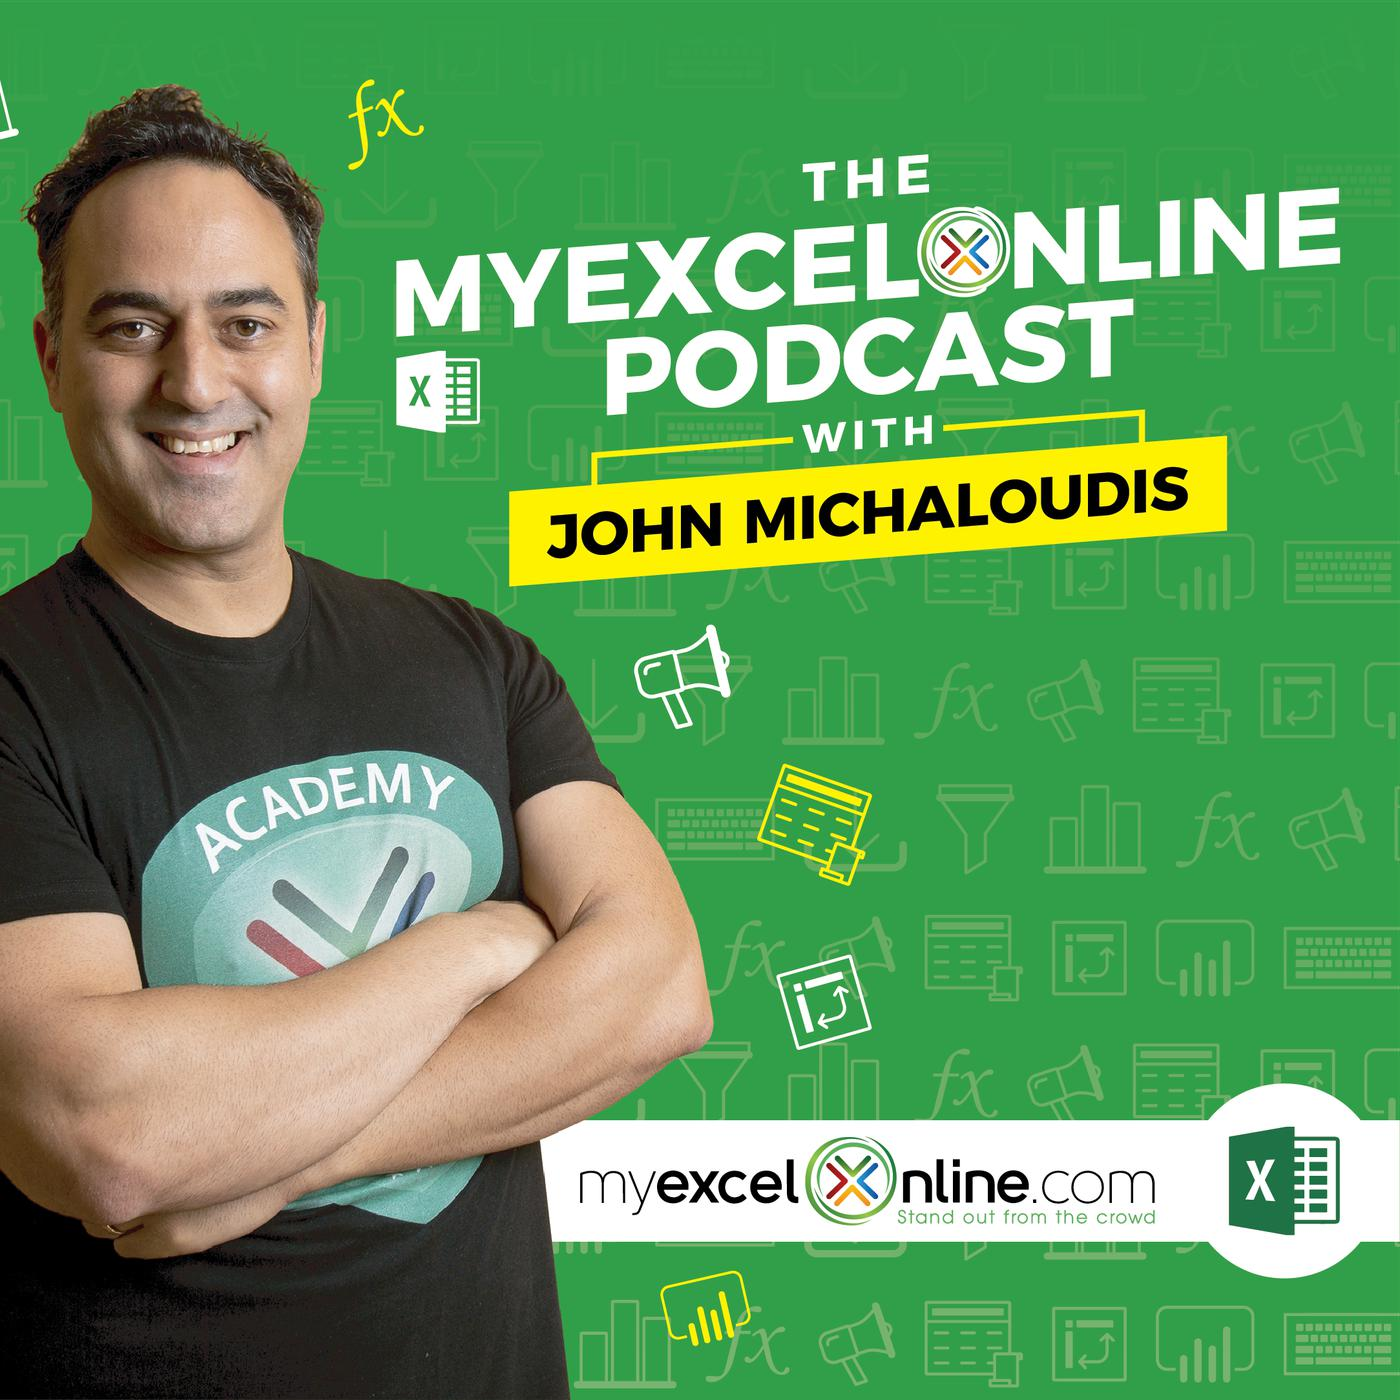 MyExcelOnline - Learn Microsoft Excel (podcast) - John